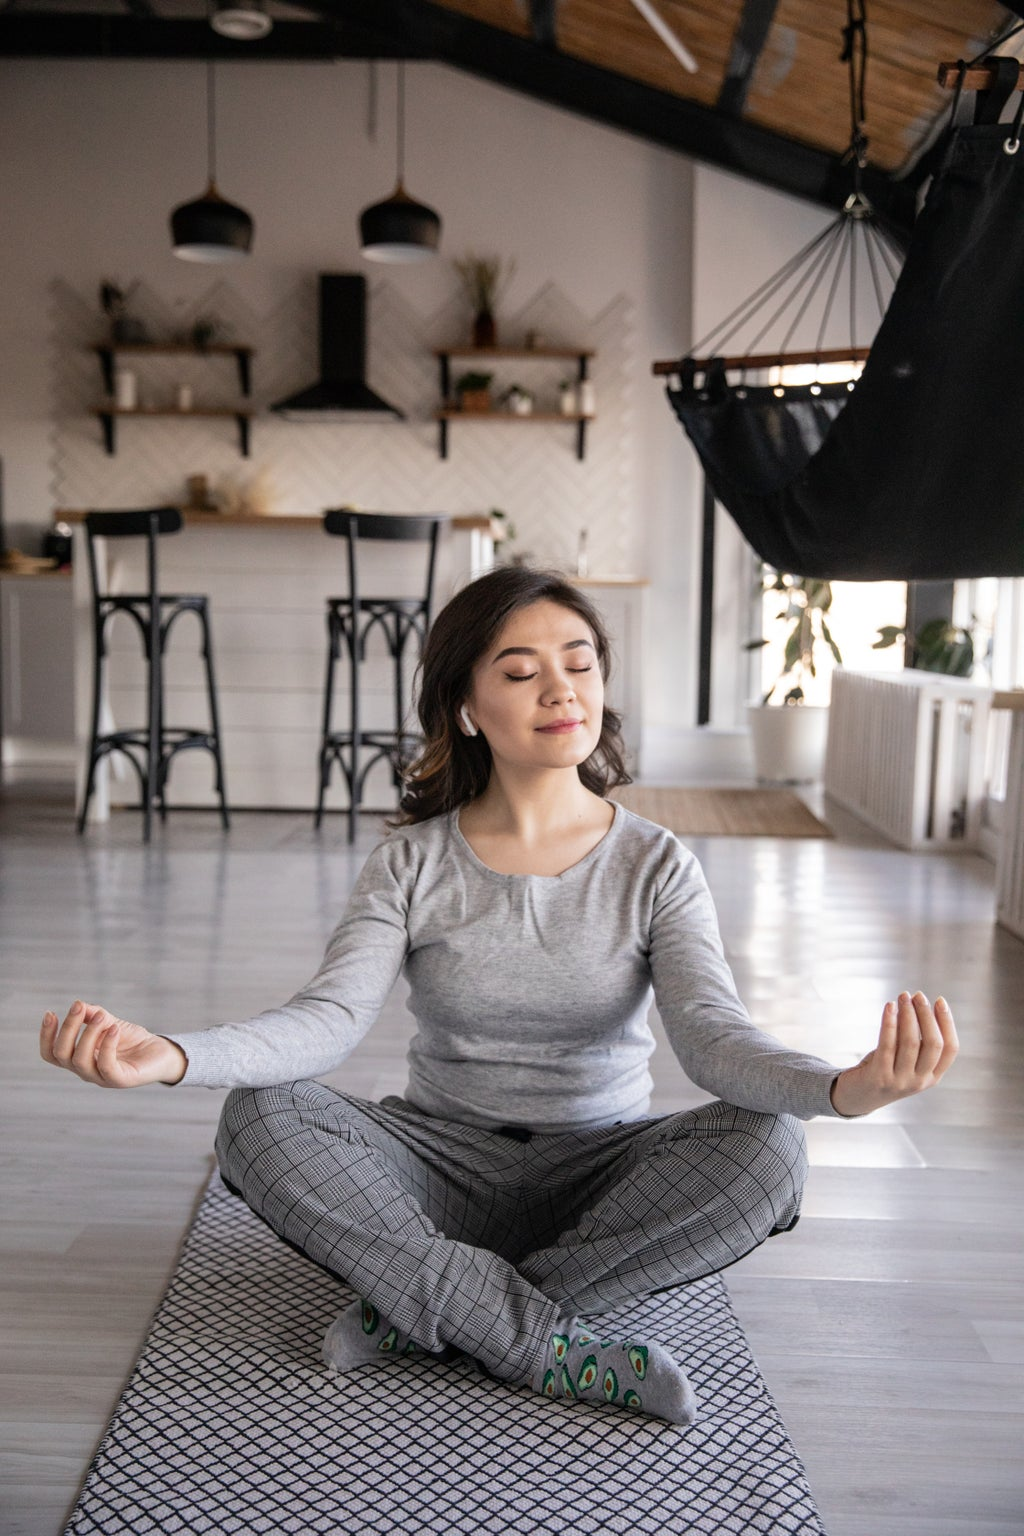 Woman in all gray meditating on a yoga mat on the floor in her apartment.